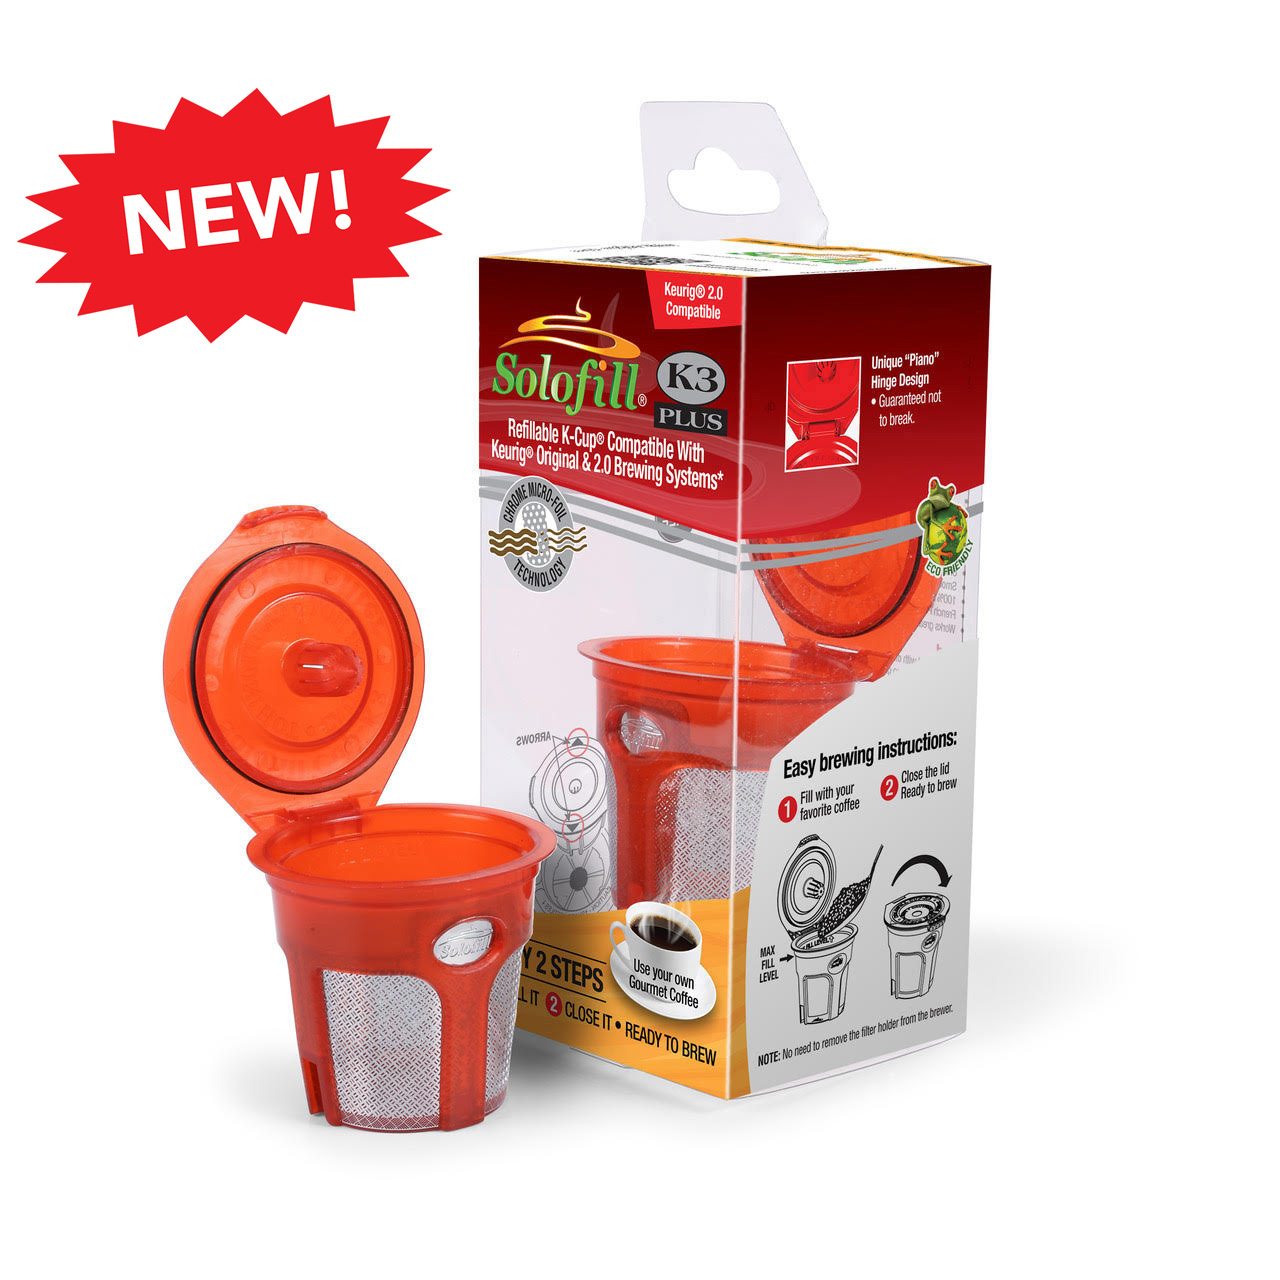 Reusable Coffee Filter Solofill K3 Plus Compatible with: All 1st Generation Keurig K-Cup Brewing & 2.0 Brewing Systems